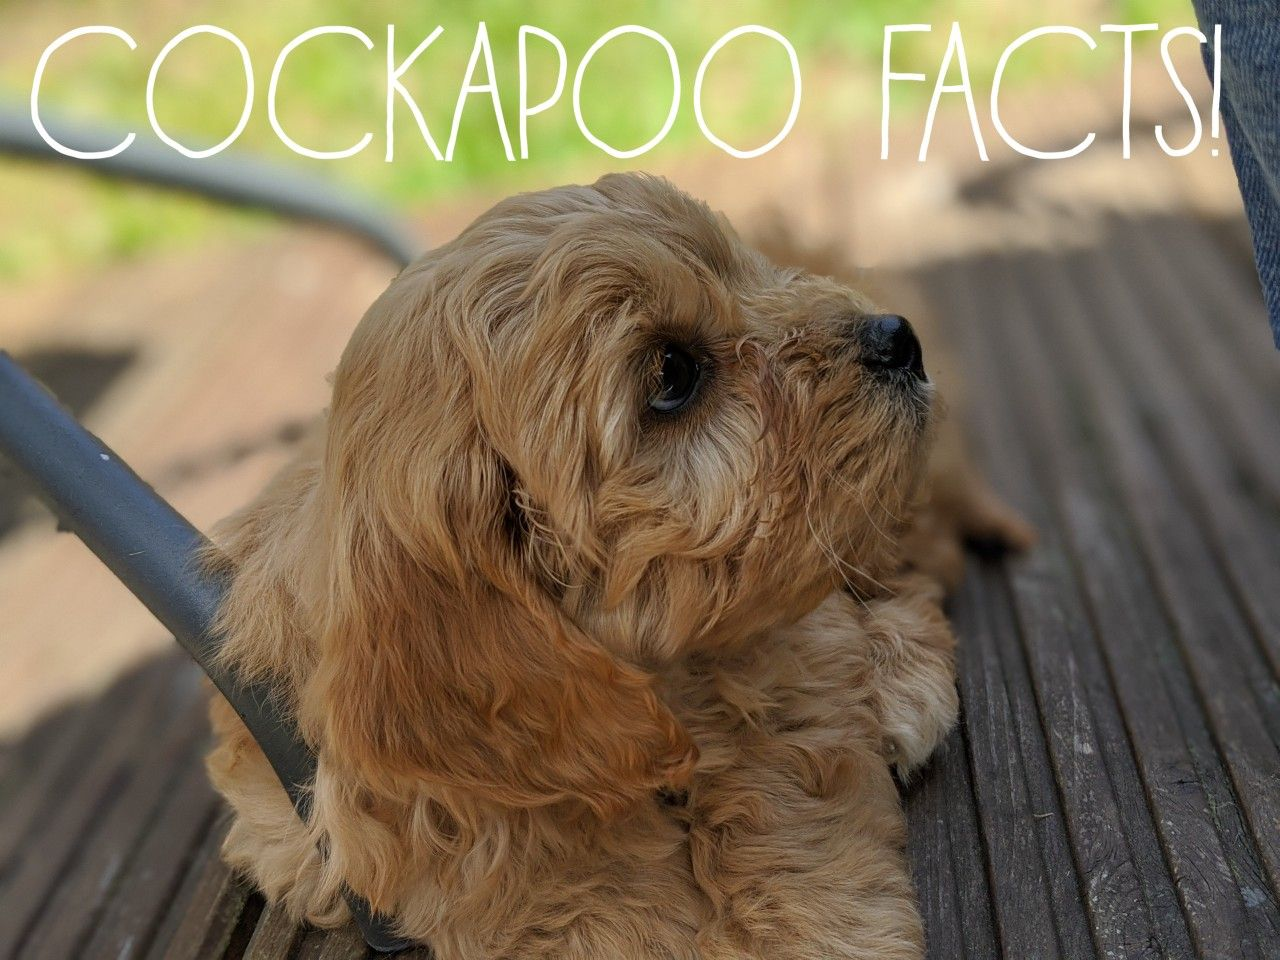 Cockapoo Puppies Pictures And Facts Dogtime In 2020 Cockapoo Puppies Cockapoo Cocker Spaniel Poodle Mix